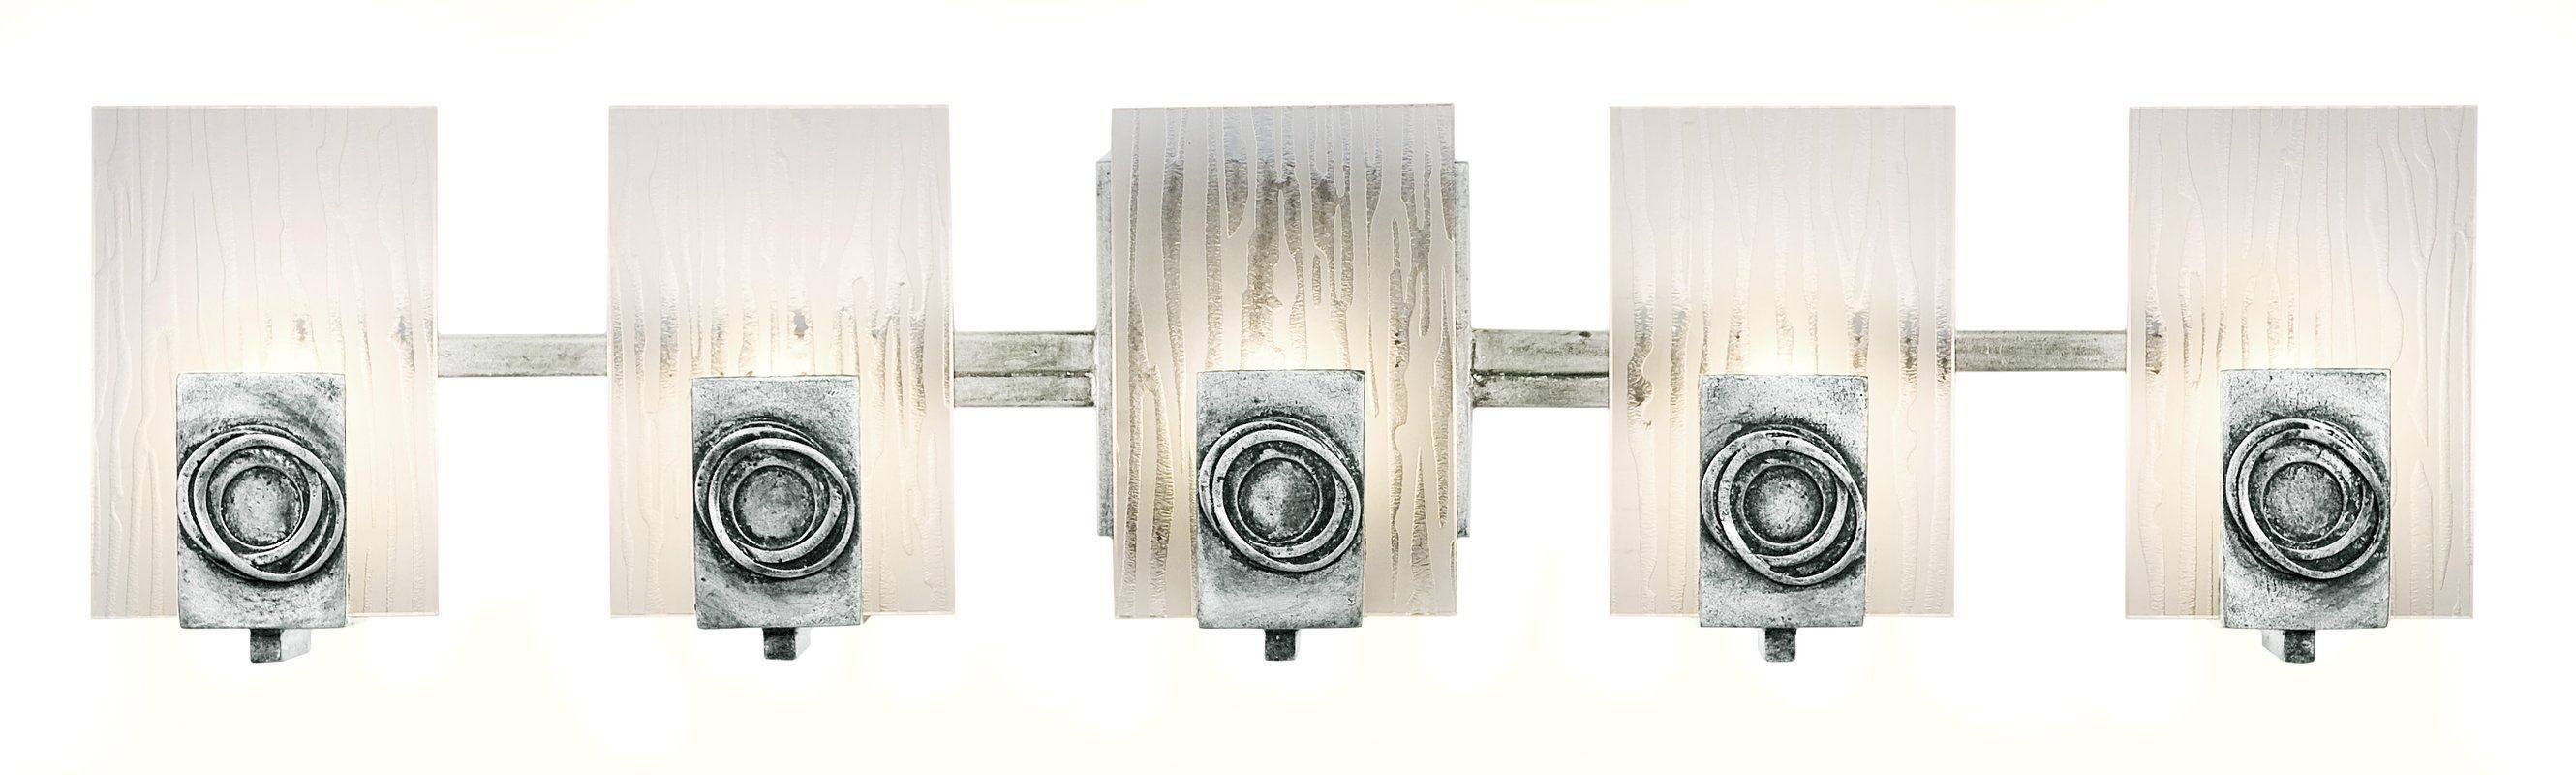 Varaluz B Light Bathroom Fixture Made of Recycled Steel and